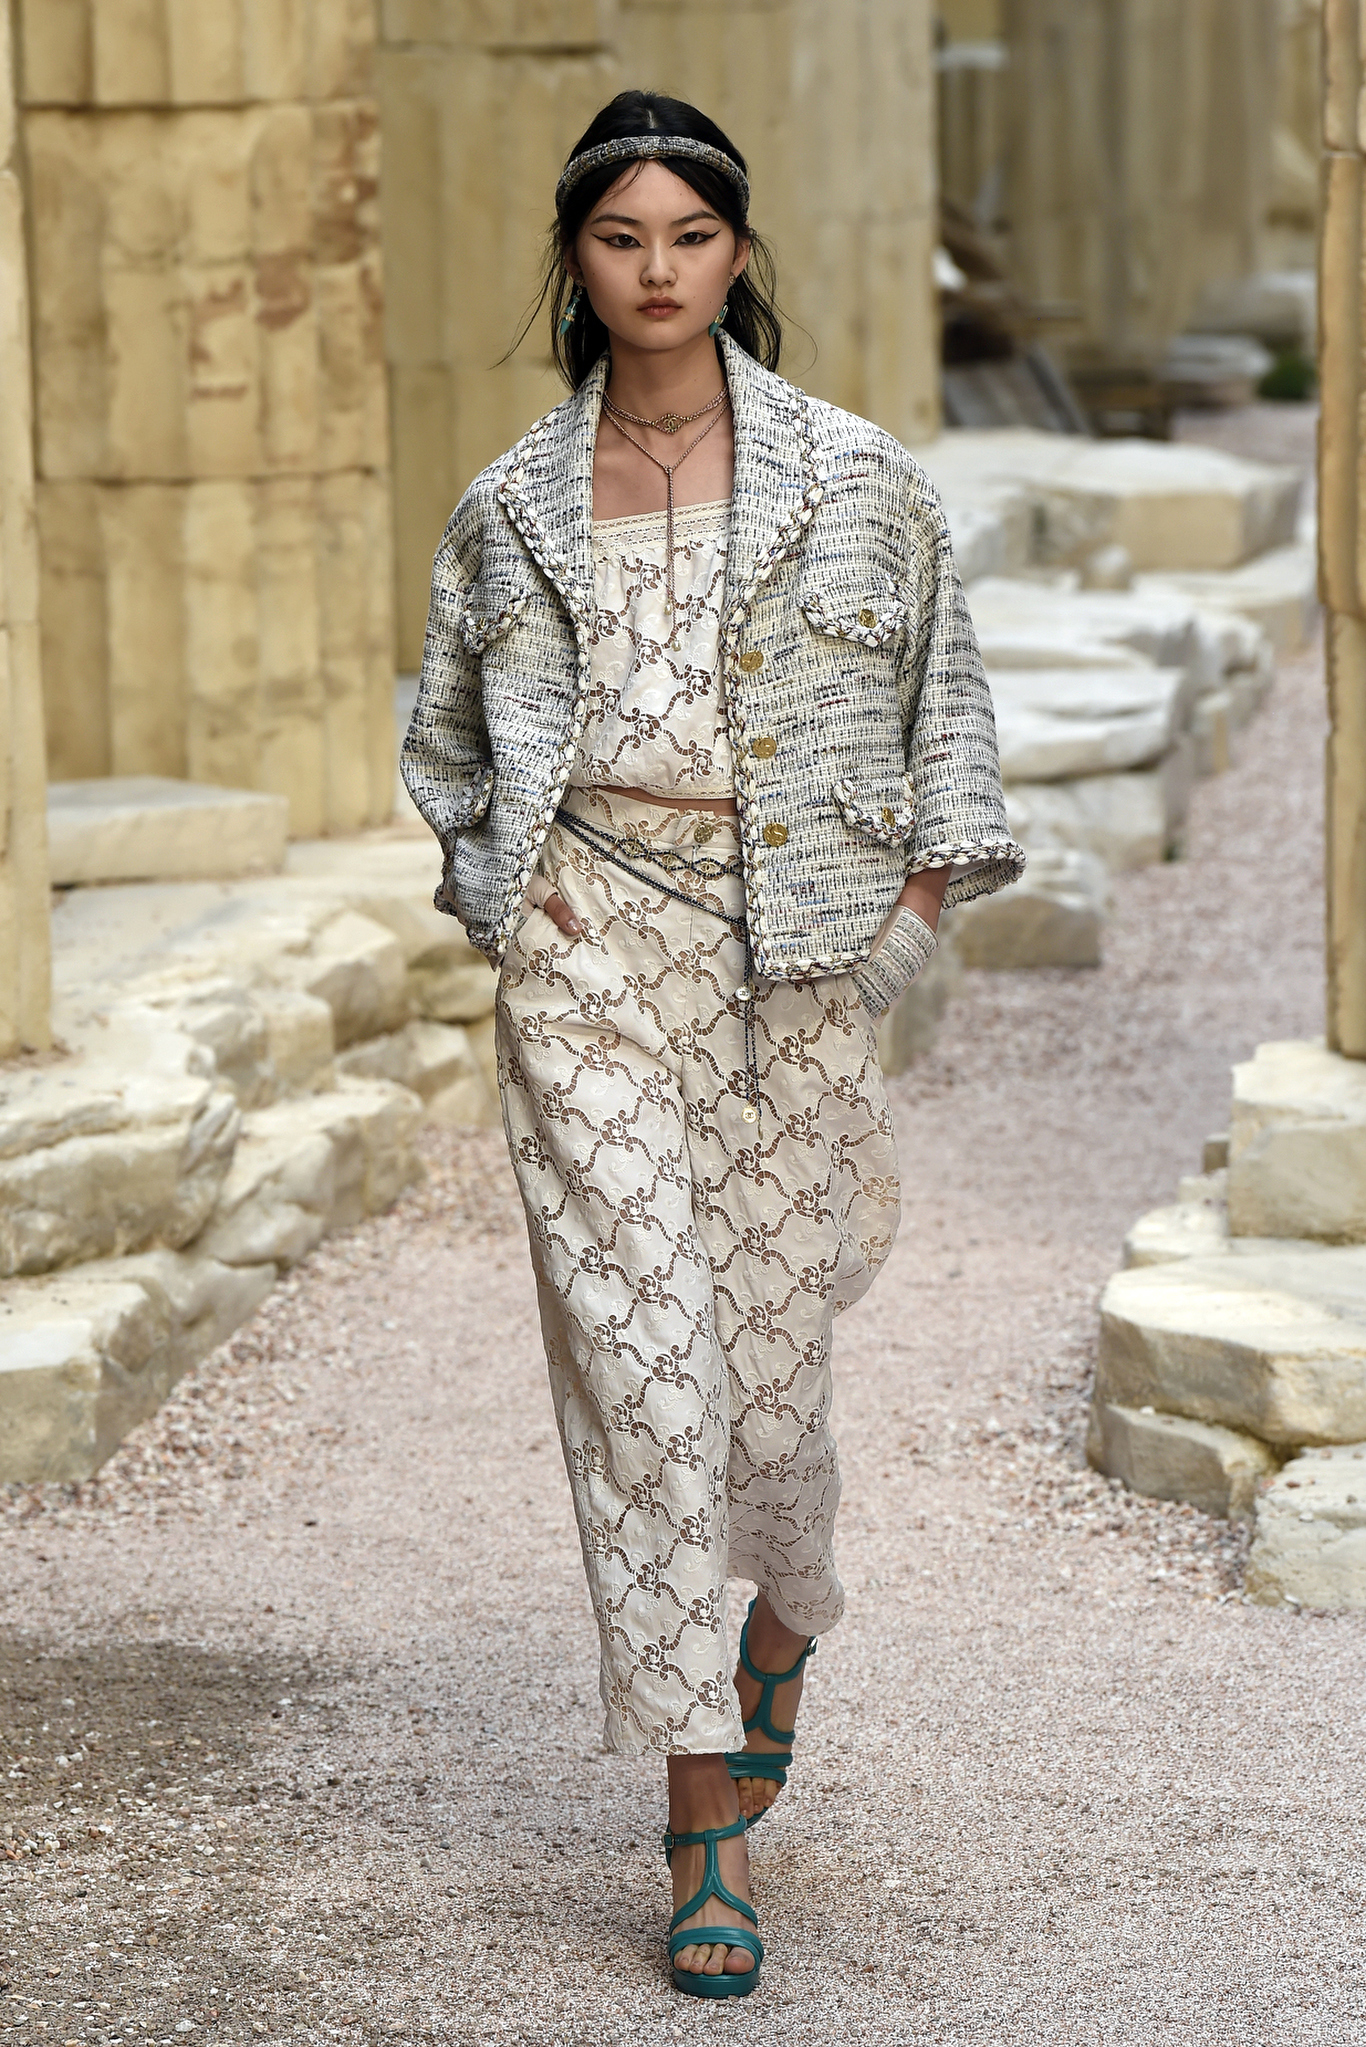 Chanel Cruise 2018 Show: All the Looks